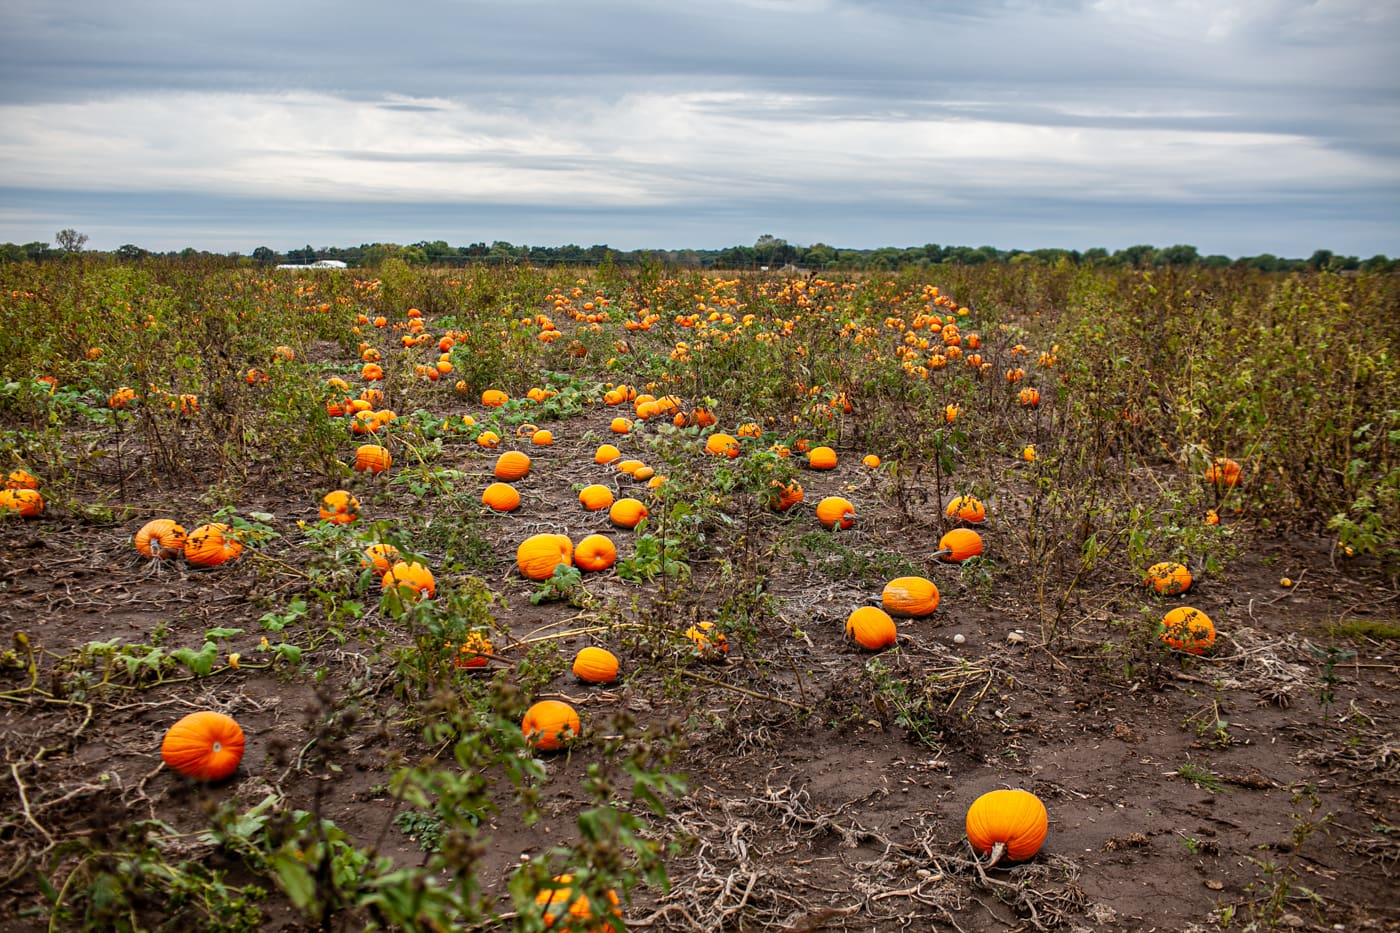 Pick your own pumpkin patch at Richardson Adventure Farm in Spring Grove, Illinois.